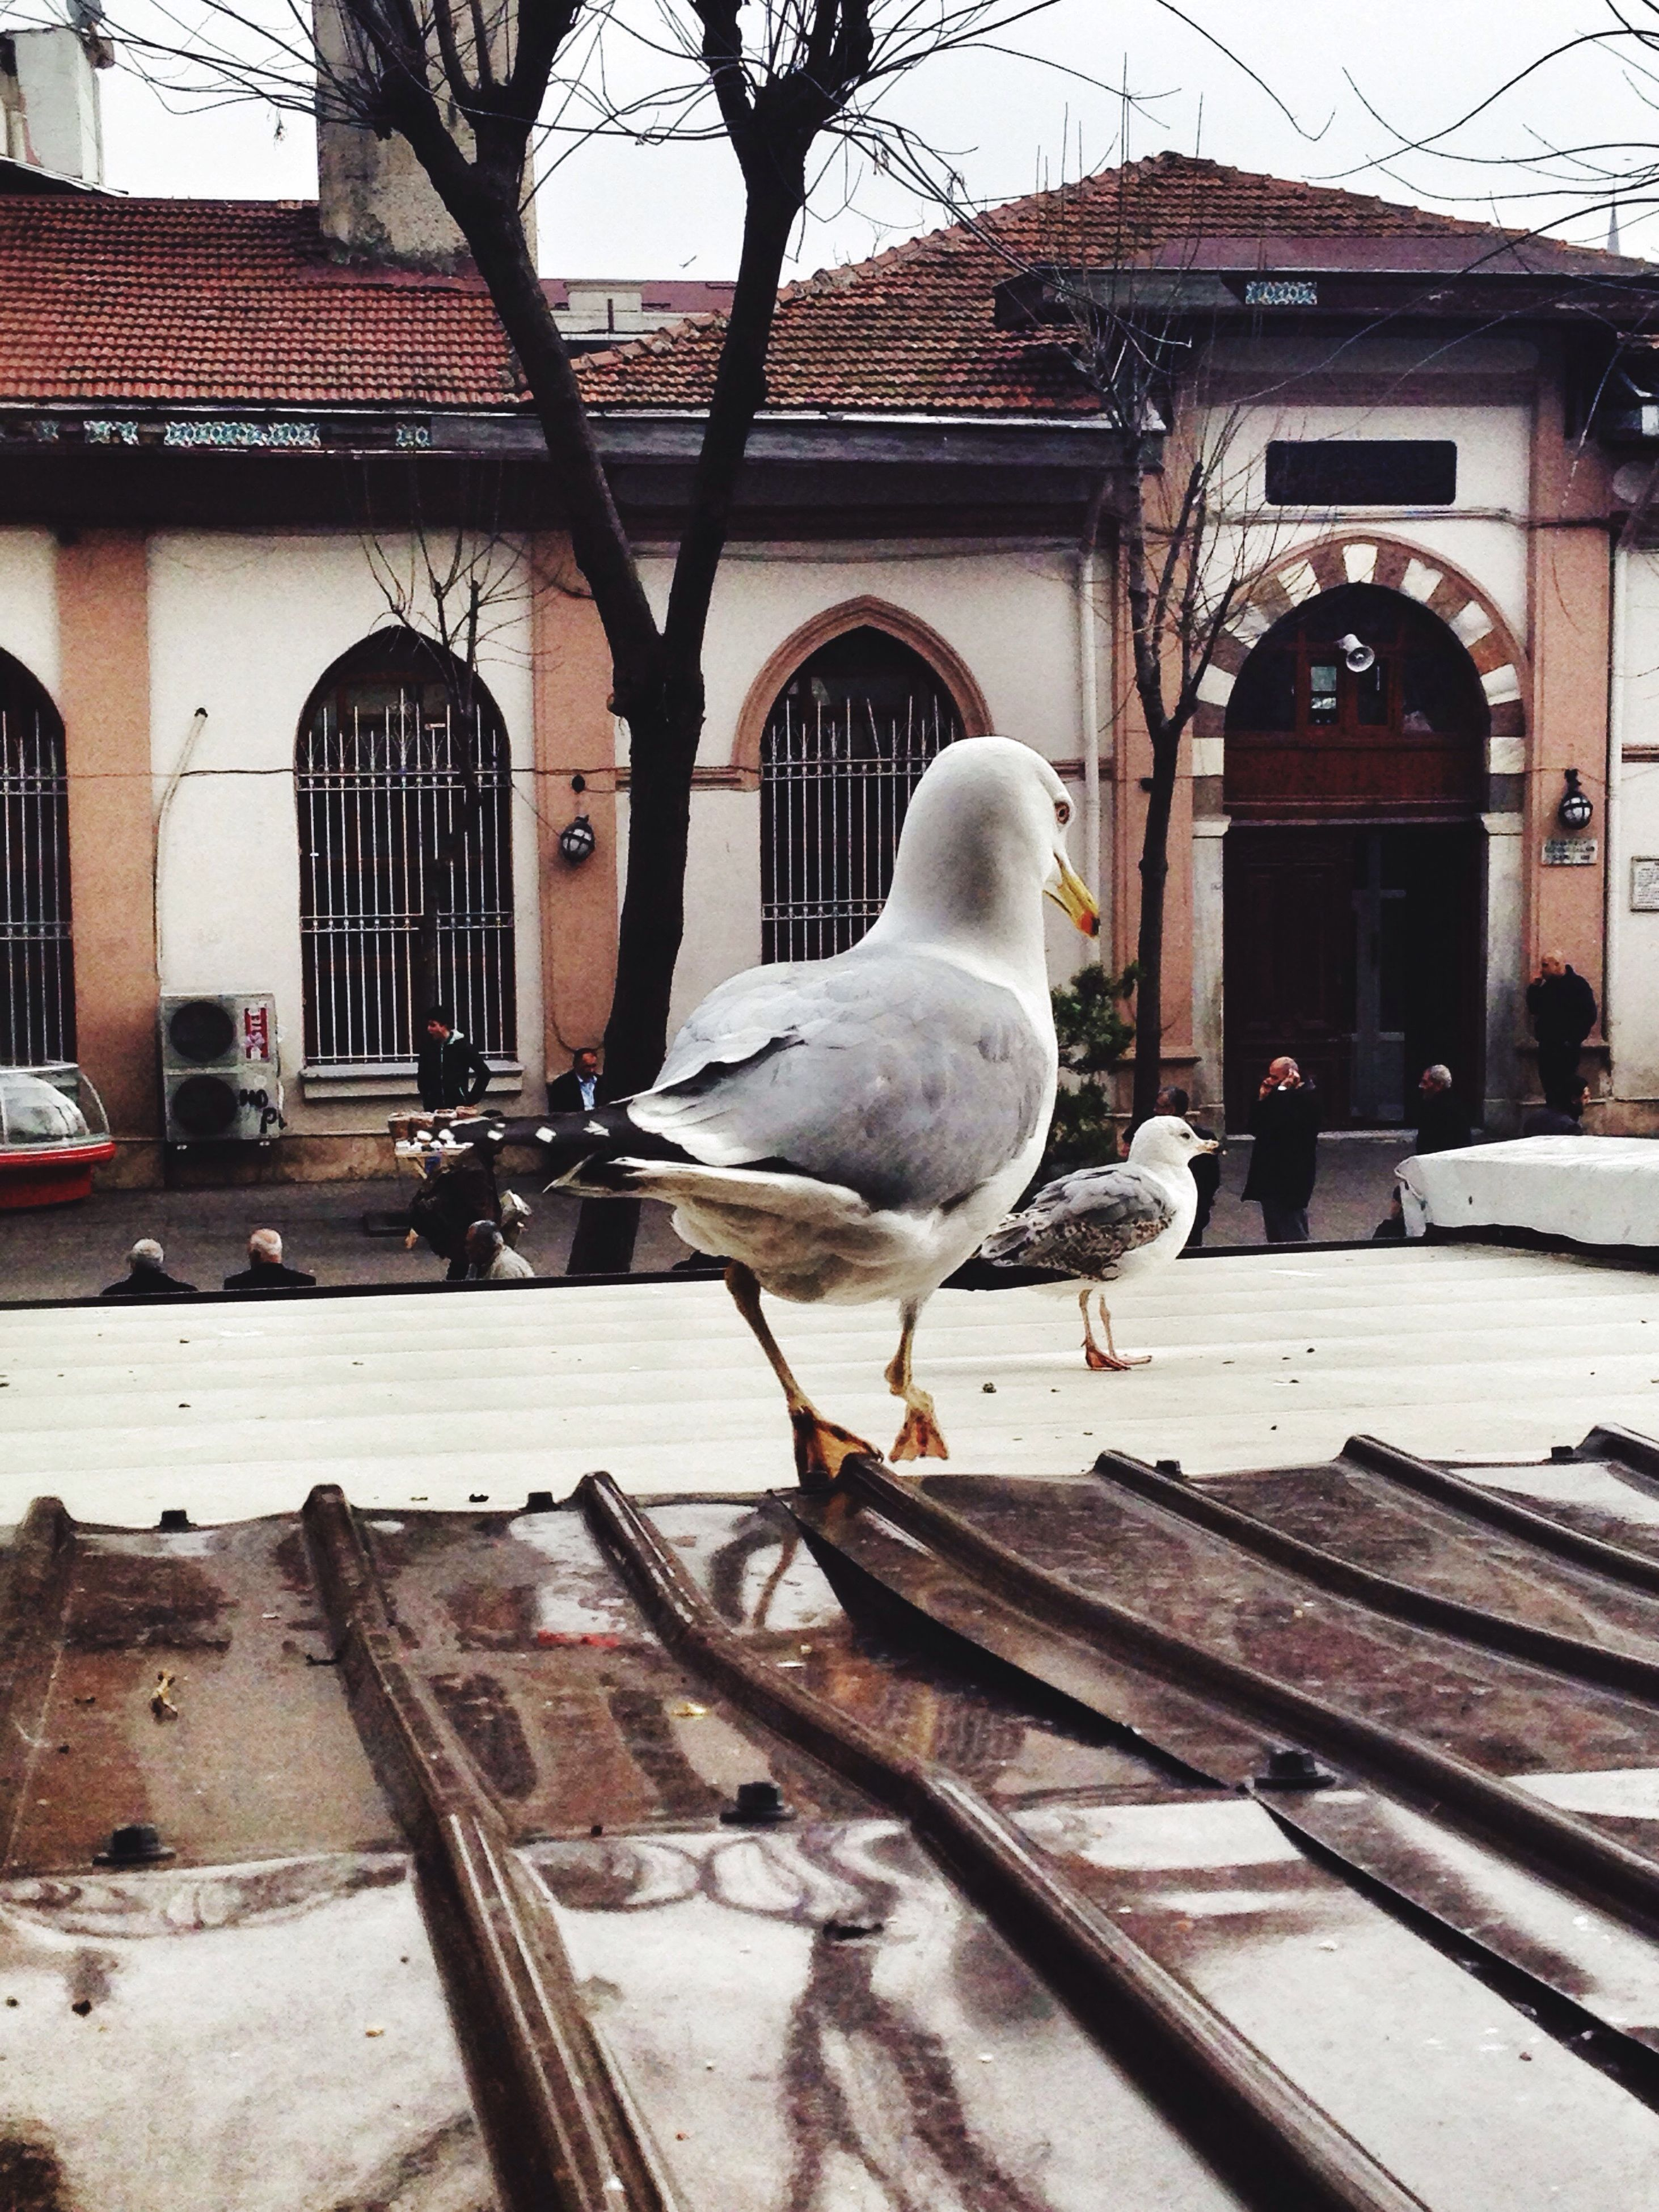 bird, animal themes, building exterior, architecture, animals in the wild, built structure, wildlife, seagull, perching, one animal, pigeon, white color, snow, winter, house, outdoors, city, day, cold temperature, bare tree